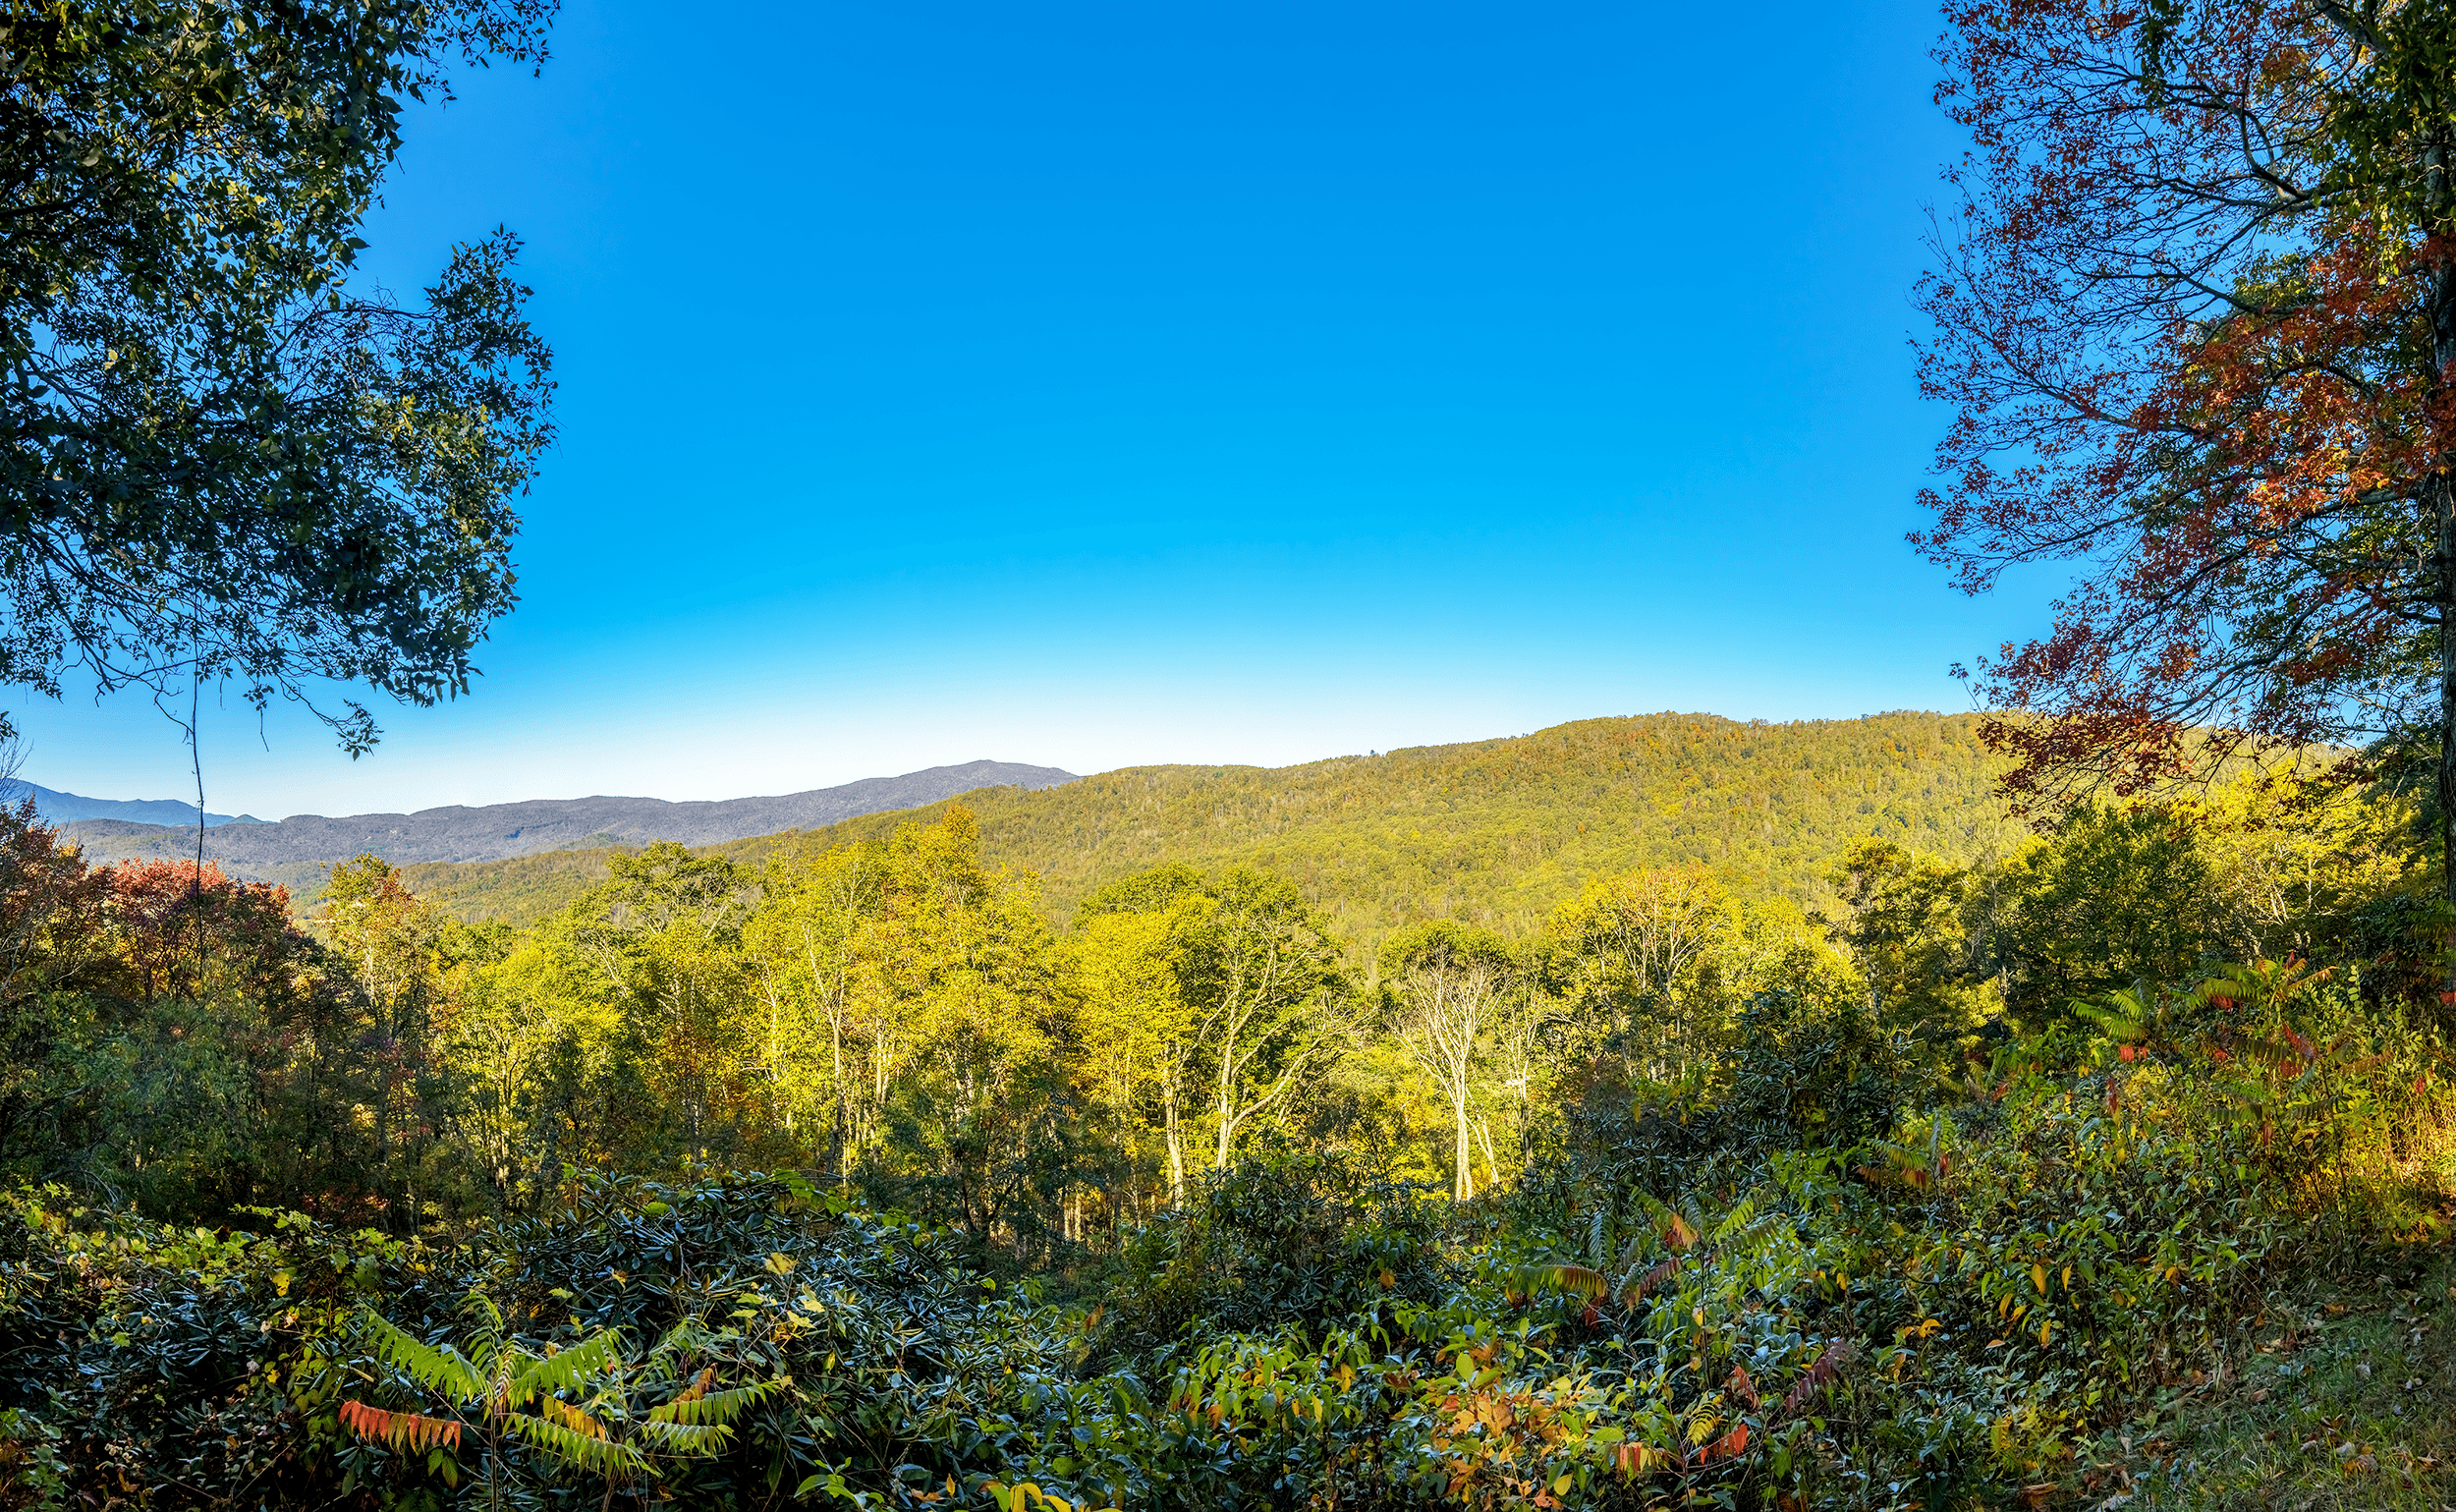 The west-facing  North Toe River Valley Overlook  at Milepost 318.4 is a favorite spot for mountain sunset views. Less known, however, is that this section of the Blue Ridge Parkway is the only section that follows closely an earlier scenic highway, the  Crest of the Blue Ridge Highway , which was built in 1912, but whose construction was abandoned by 1917 when the U.S. entered WWI.